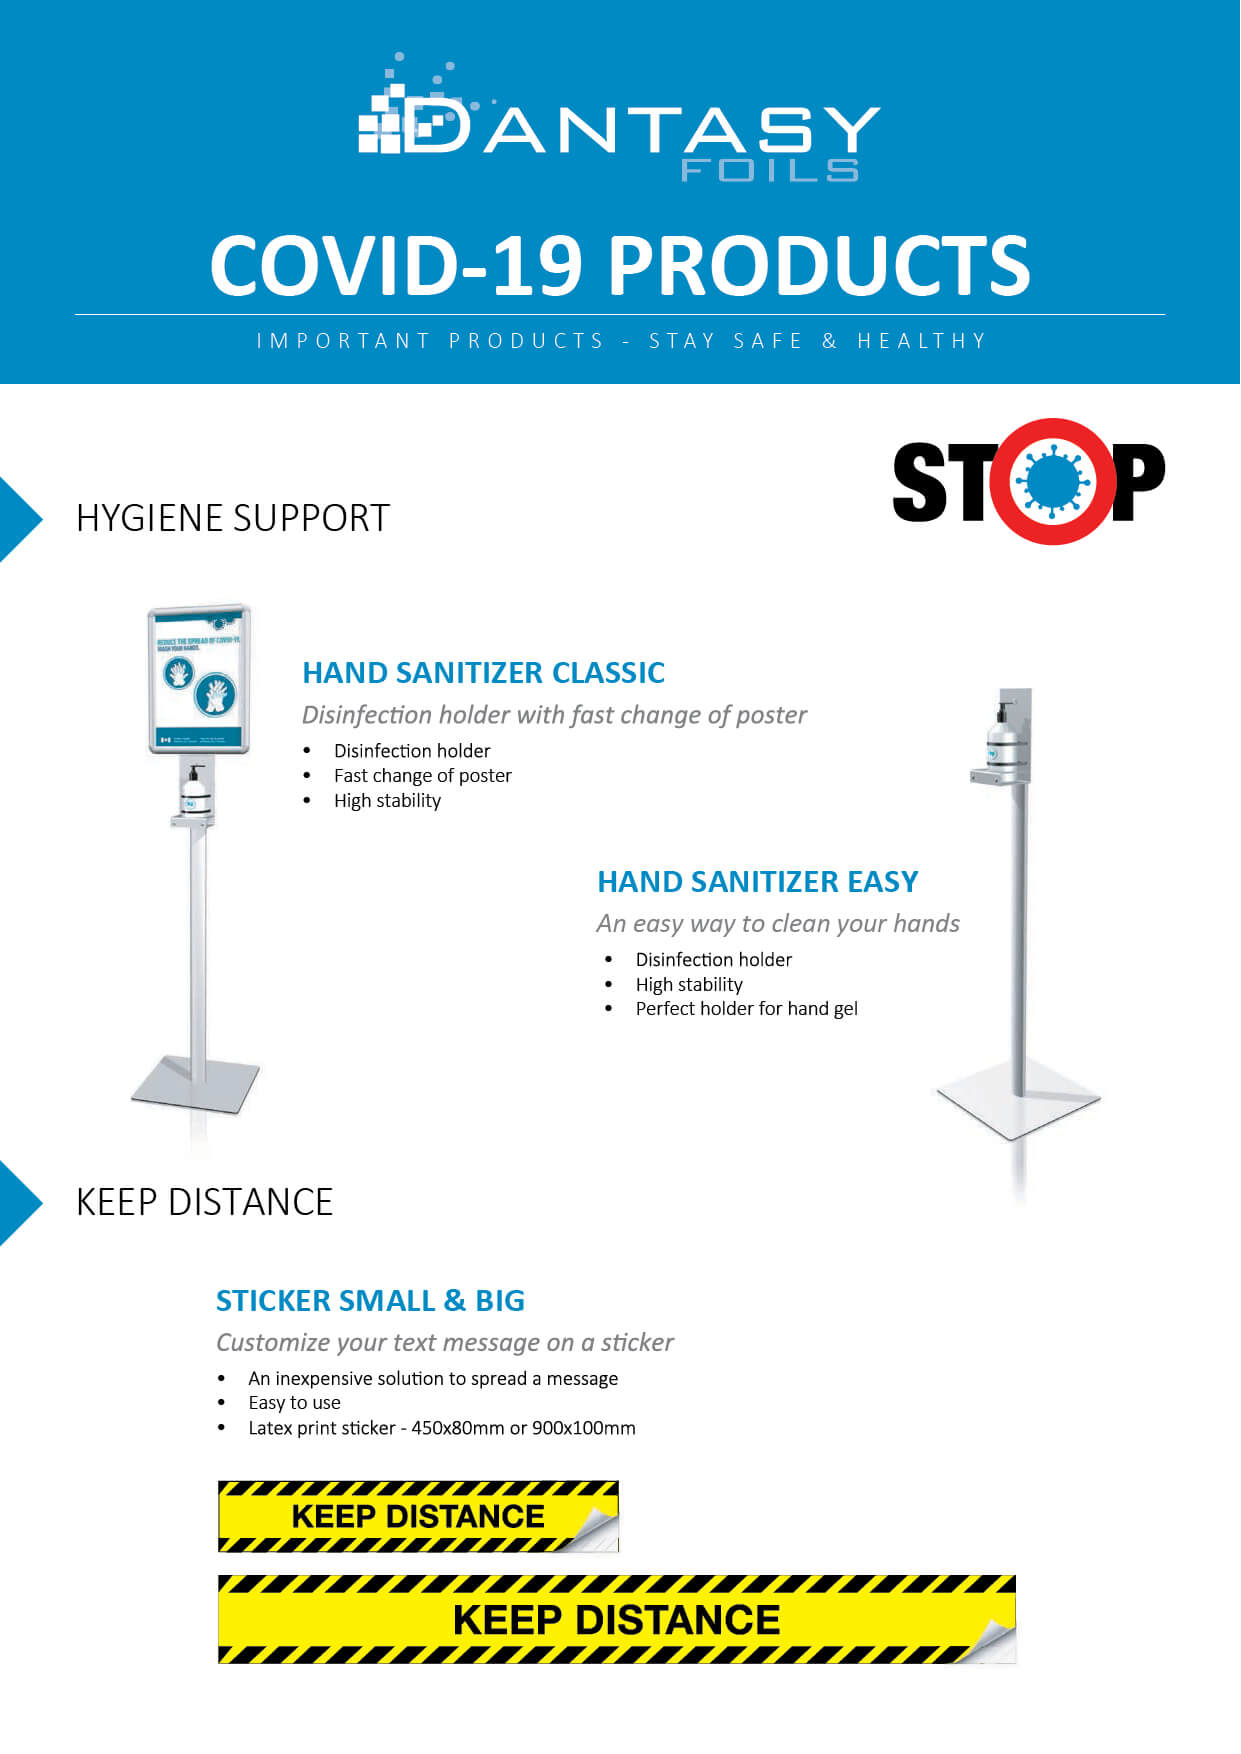 Corona proof hygiene products for workplaces